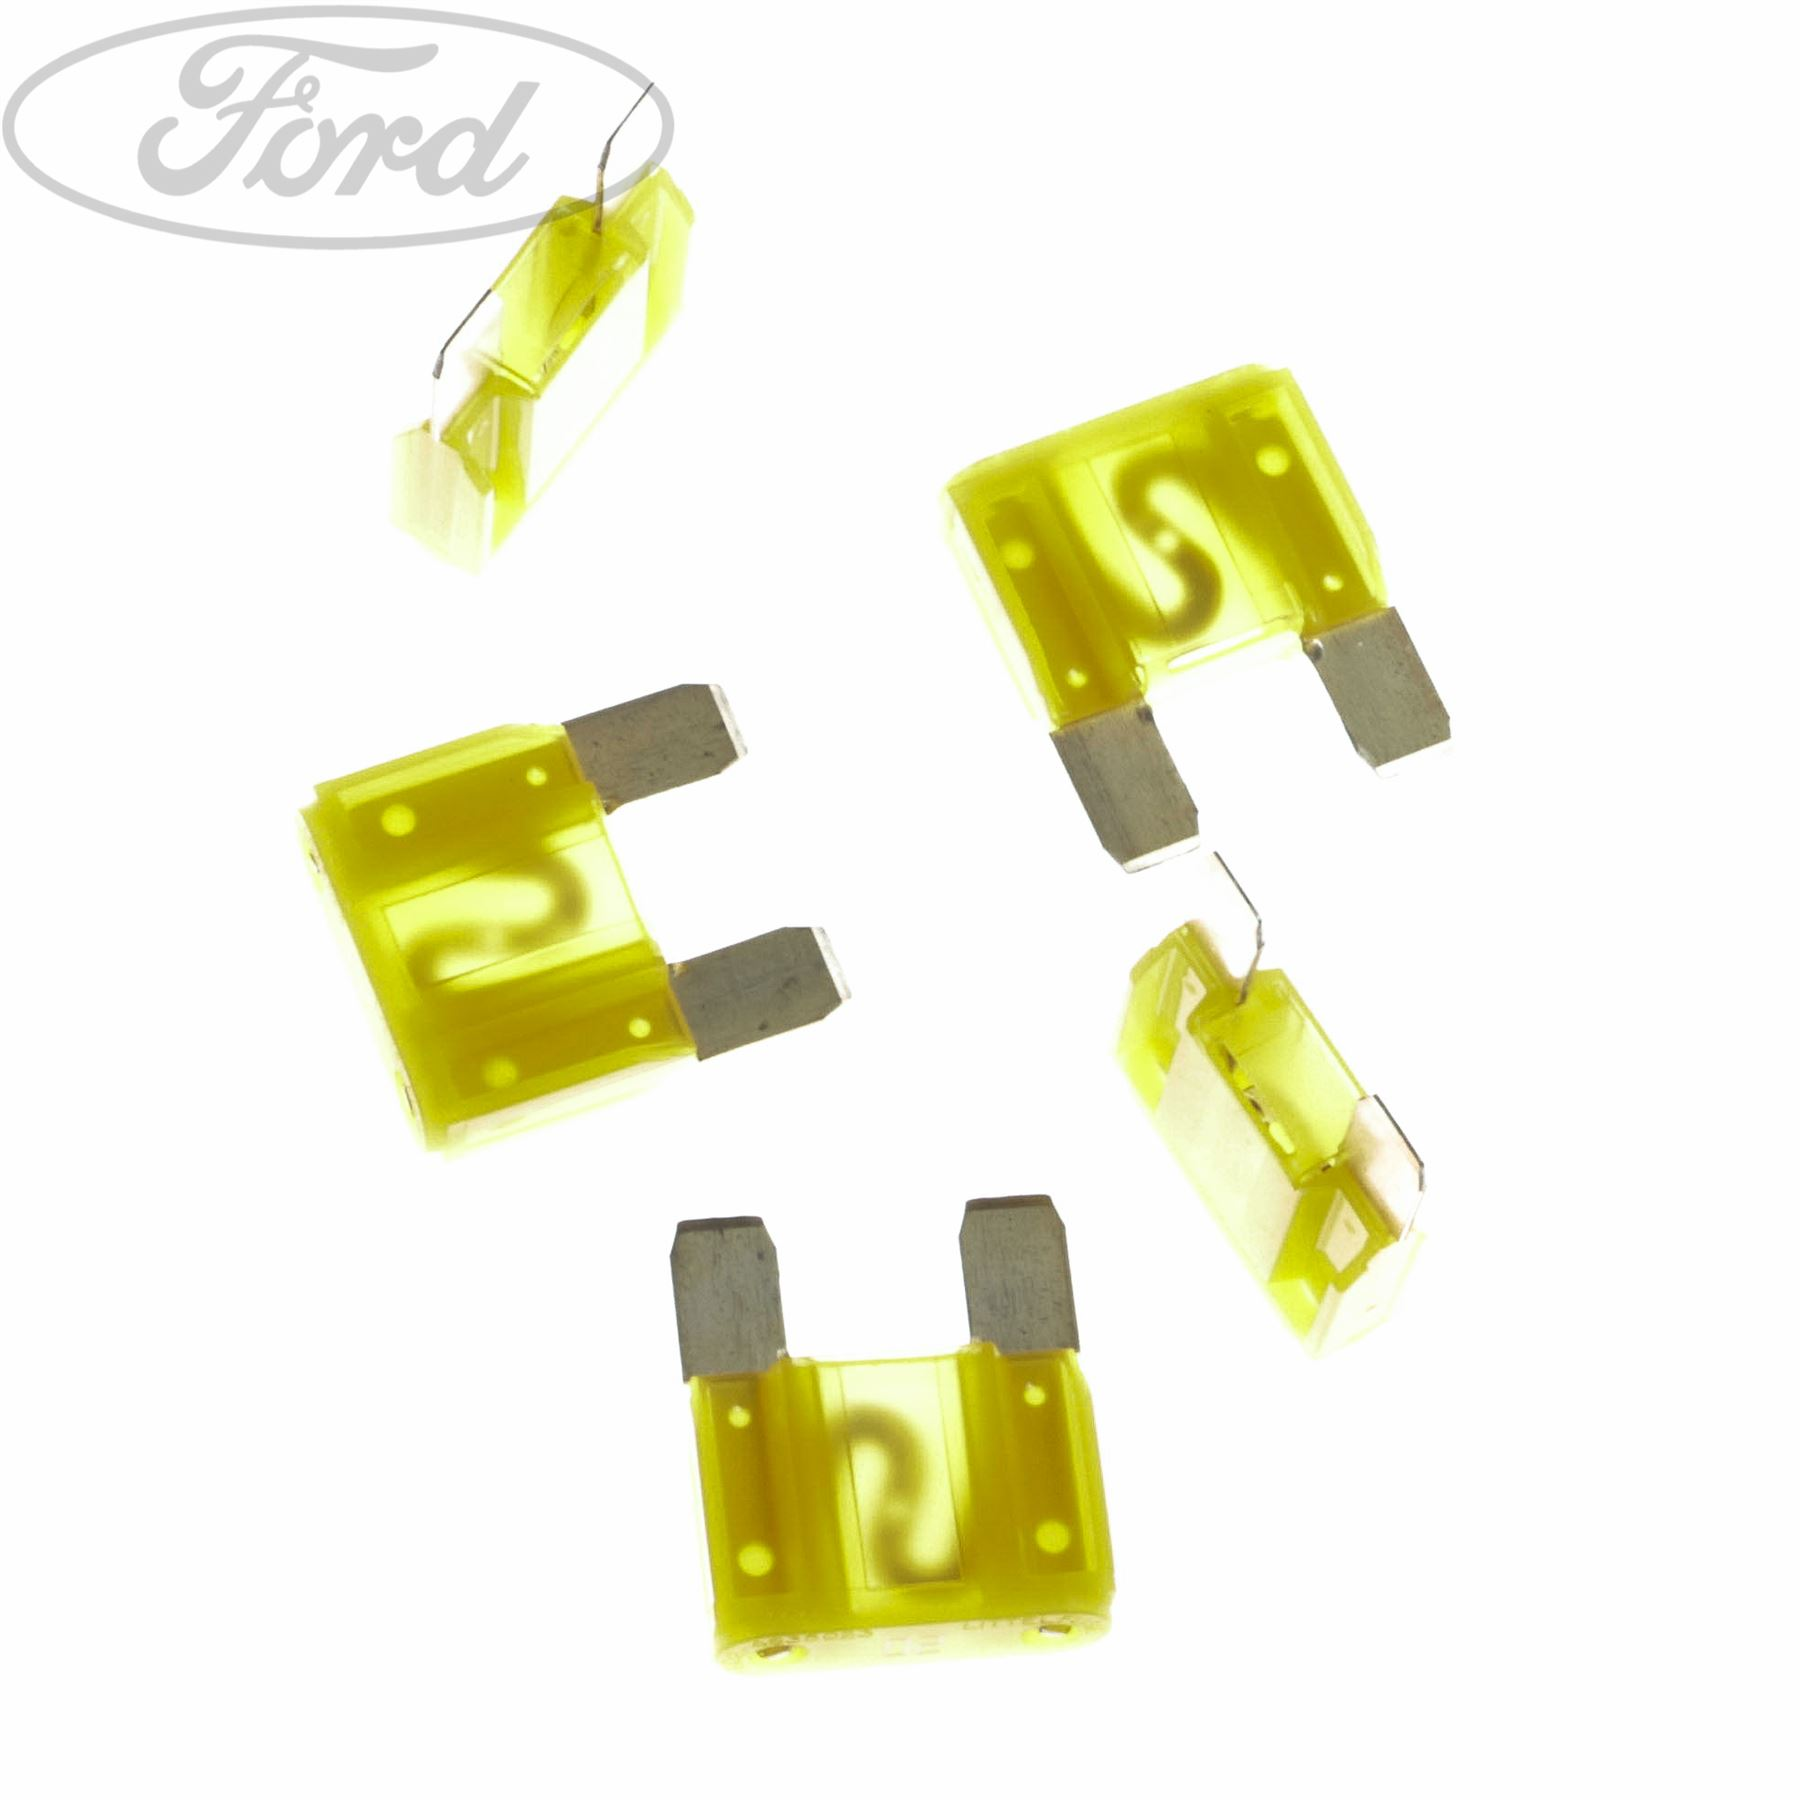 hight resolution of details about genuine ford focus mk1 maxi 20 amp fuse 3359662